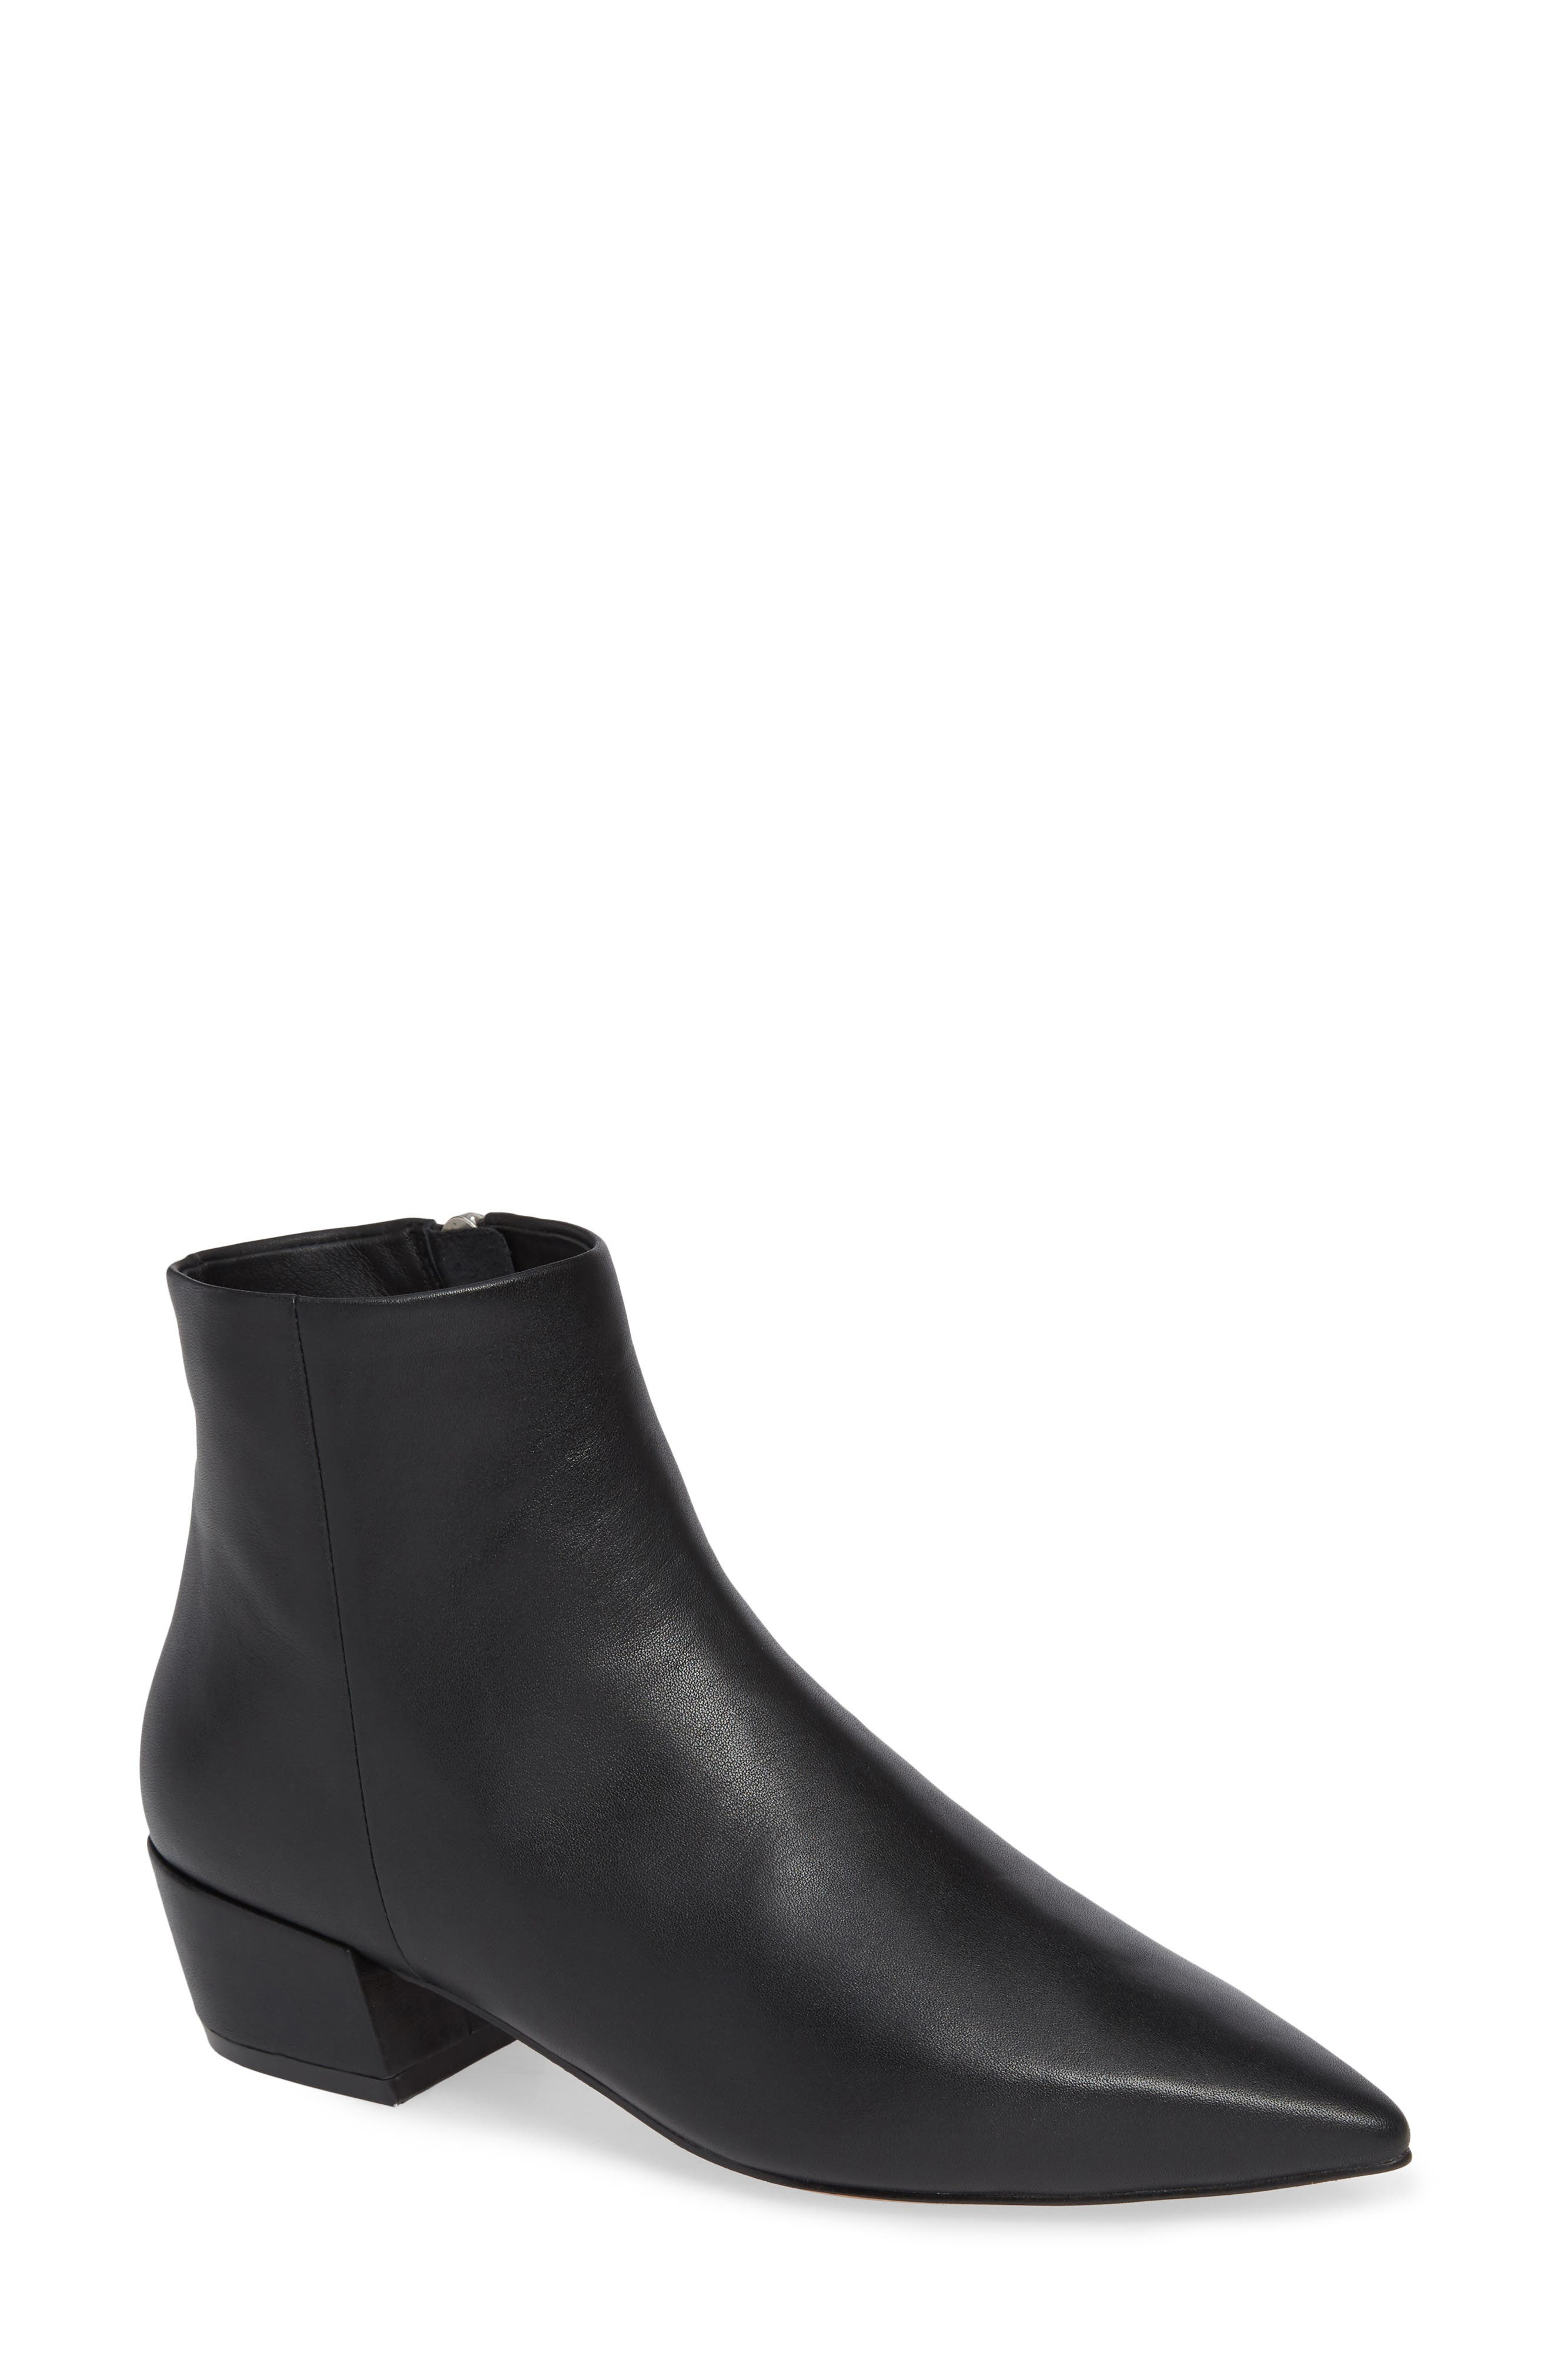 LINEA PAOLO Robyn Waterproof Boot, Main, color, BLACK LEATHER